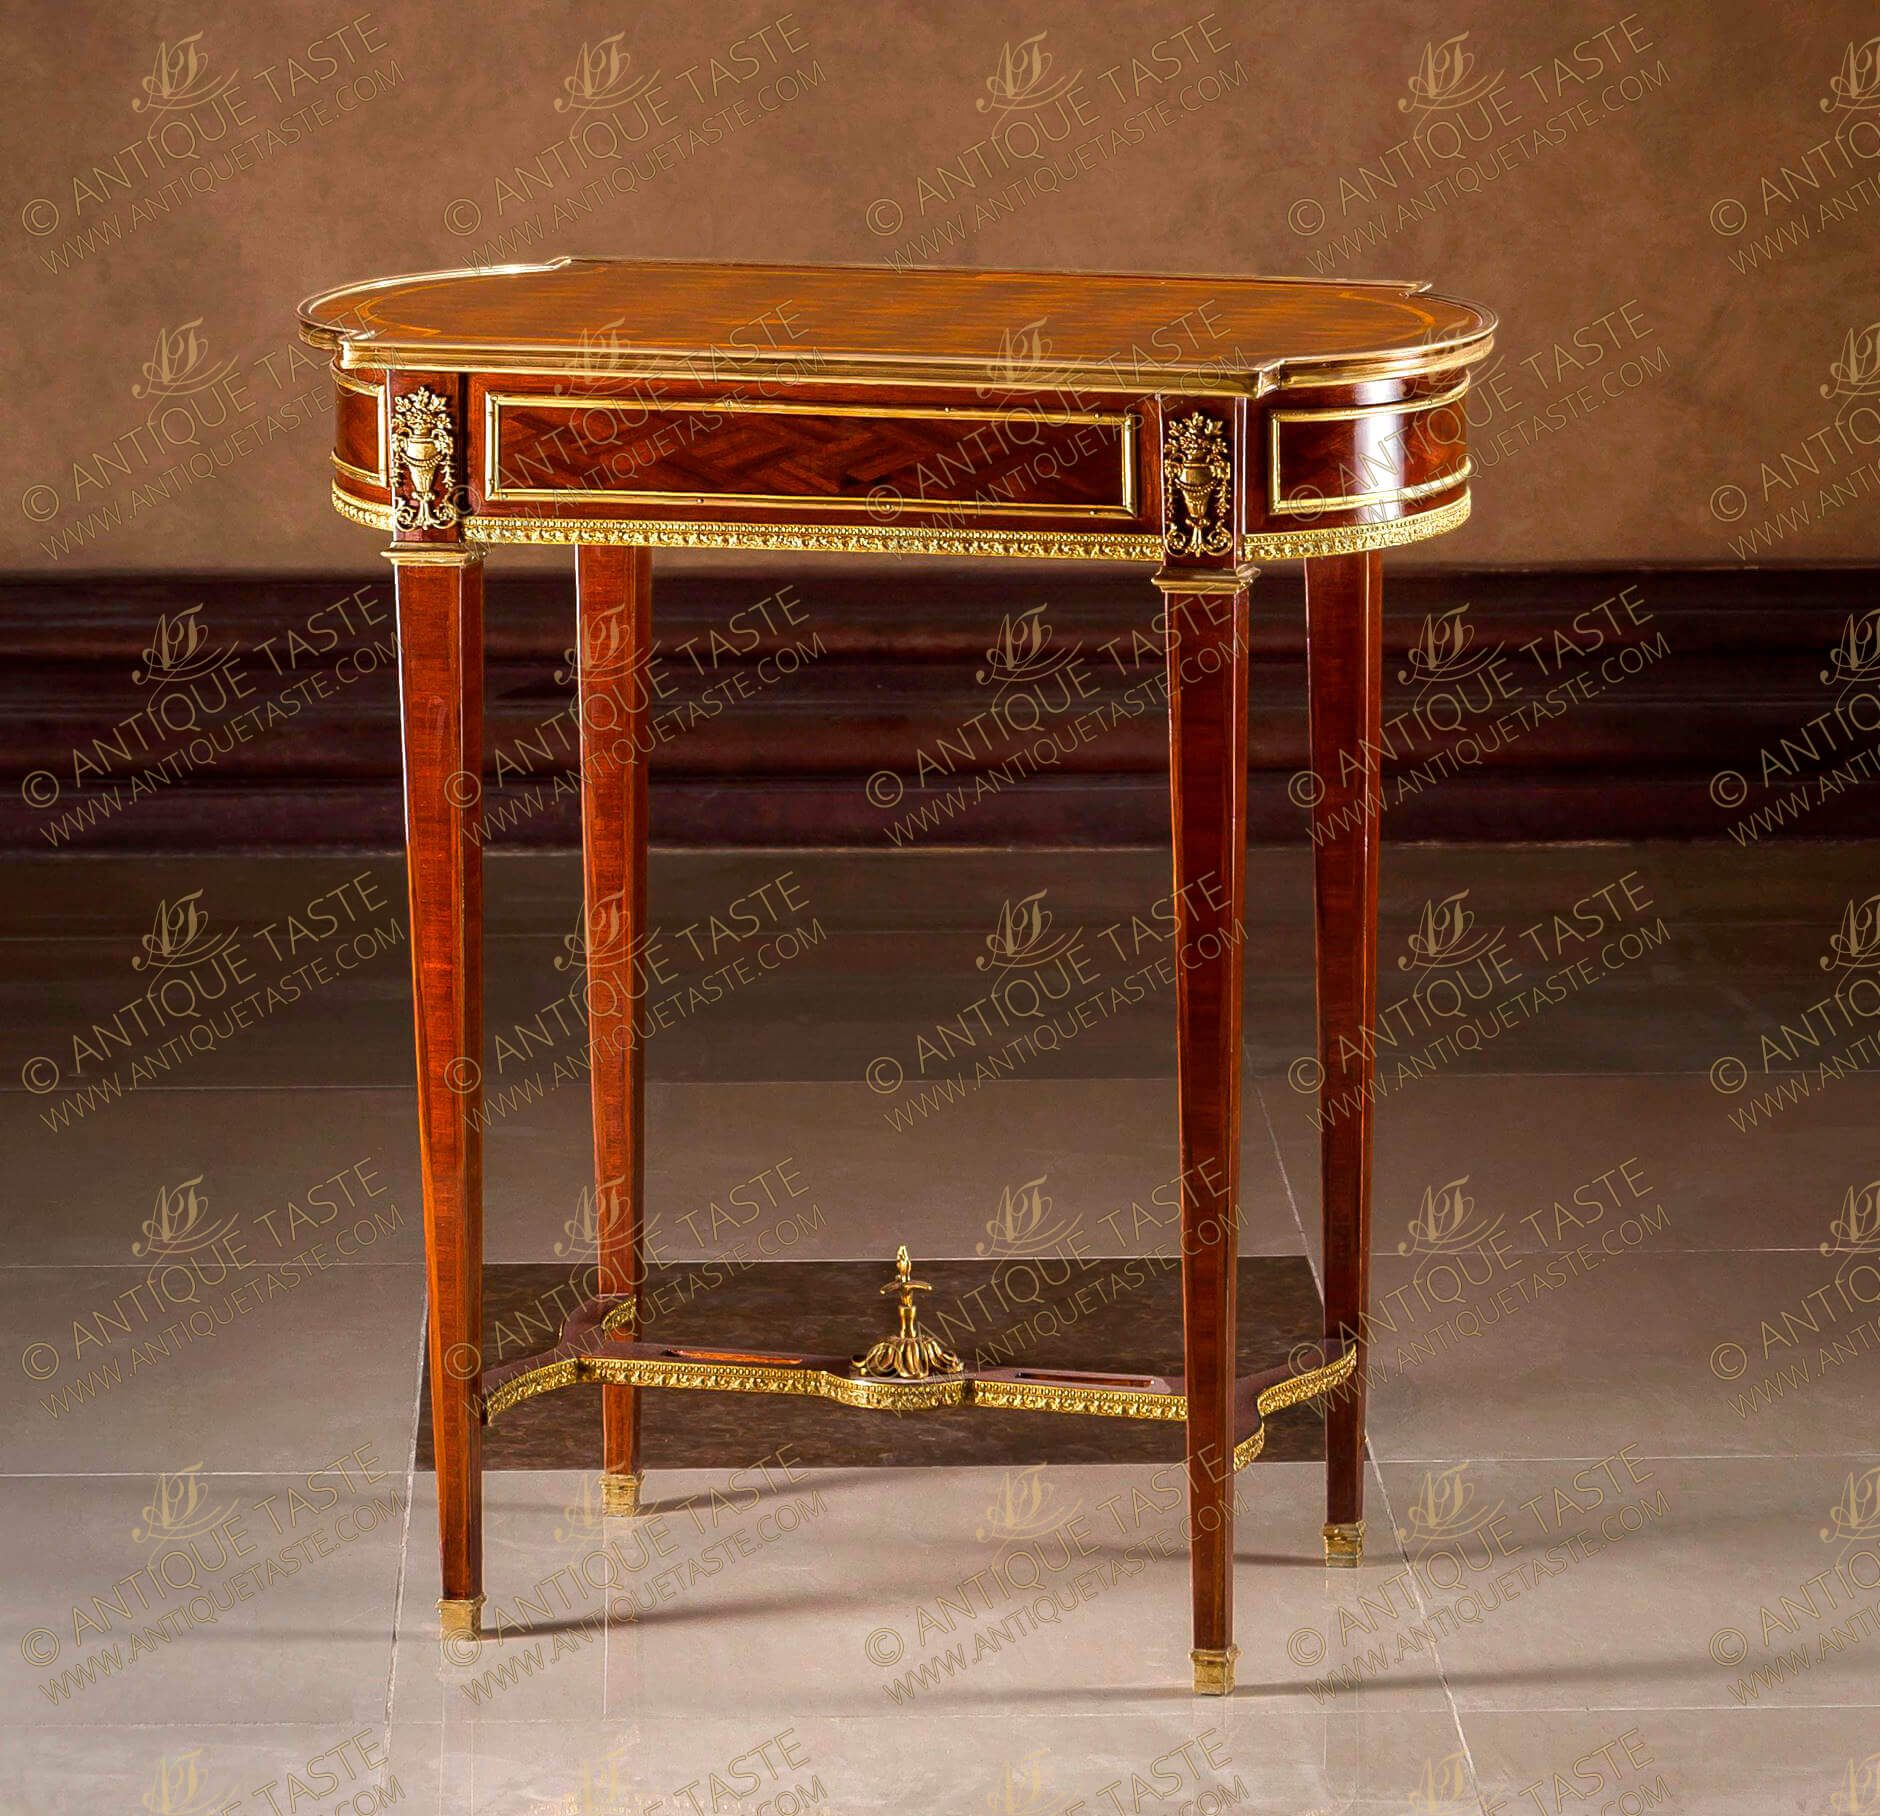 A dignified French mid 19th century Louis XVI Neo-classical style gilt-ormolu-mounted and parquetry inlaid Table À Ouvrage after the mode by Maison Kriéger, The oval breakfront top has a crossbanded veneer and parquetry inlays within a molded gilt-ormolu gallery above a conforming sectional frieze with one drawer and borders of ormolu filets, separated by block ornamented by Neo-classical style gilt-ormolu mounts of beaded and reeded vase issuing floral Rinceaux style and bouquet of blossoming foliate branches. The apron is bordered to the bottom with exquisitely chased ormolu designed gallery, Raised by slender tapered legs with ormolu trim finished with ormolu sabots and top ormolu crown, The legs are joined by a pierced waved sides stretcher elegantly decorated by a beaded and foliate ormolu trim with a central ormolu foliate movements final